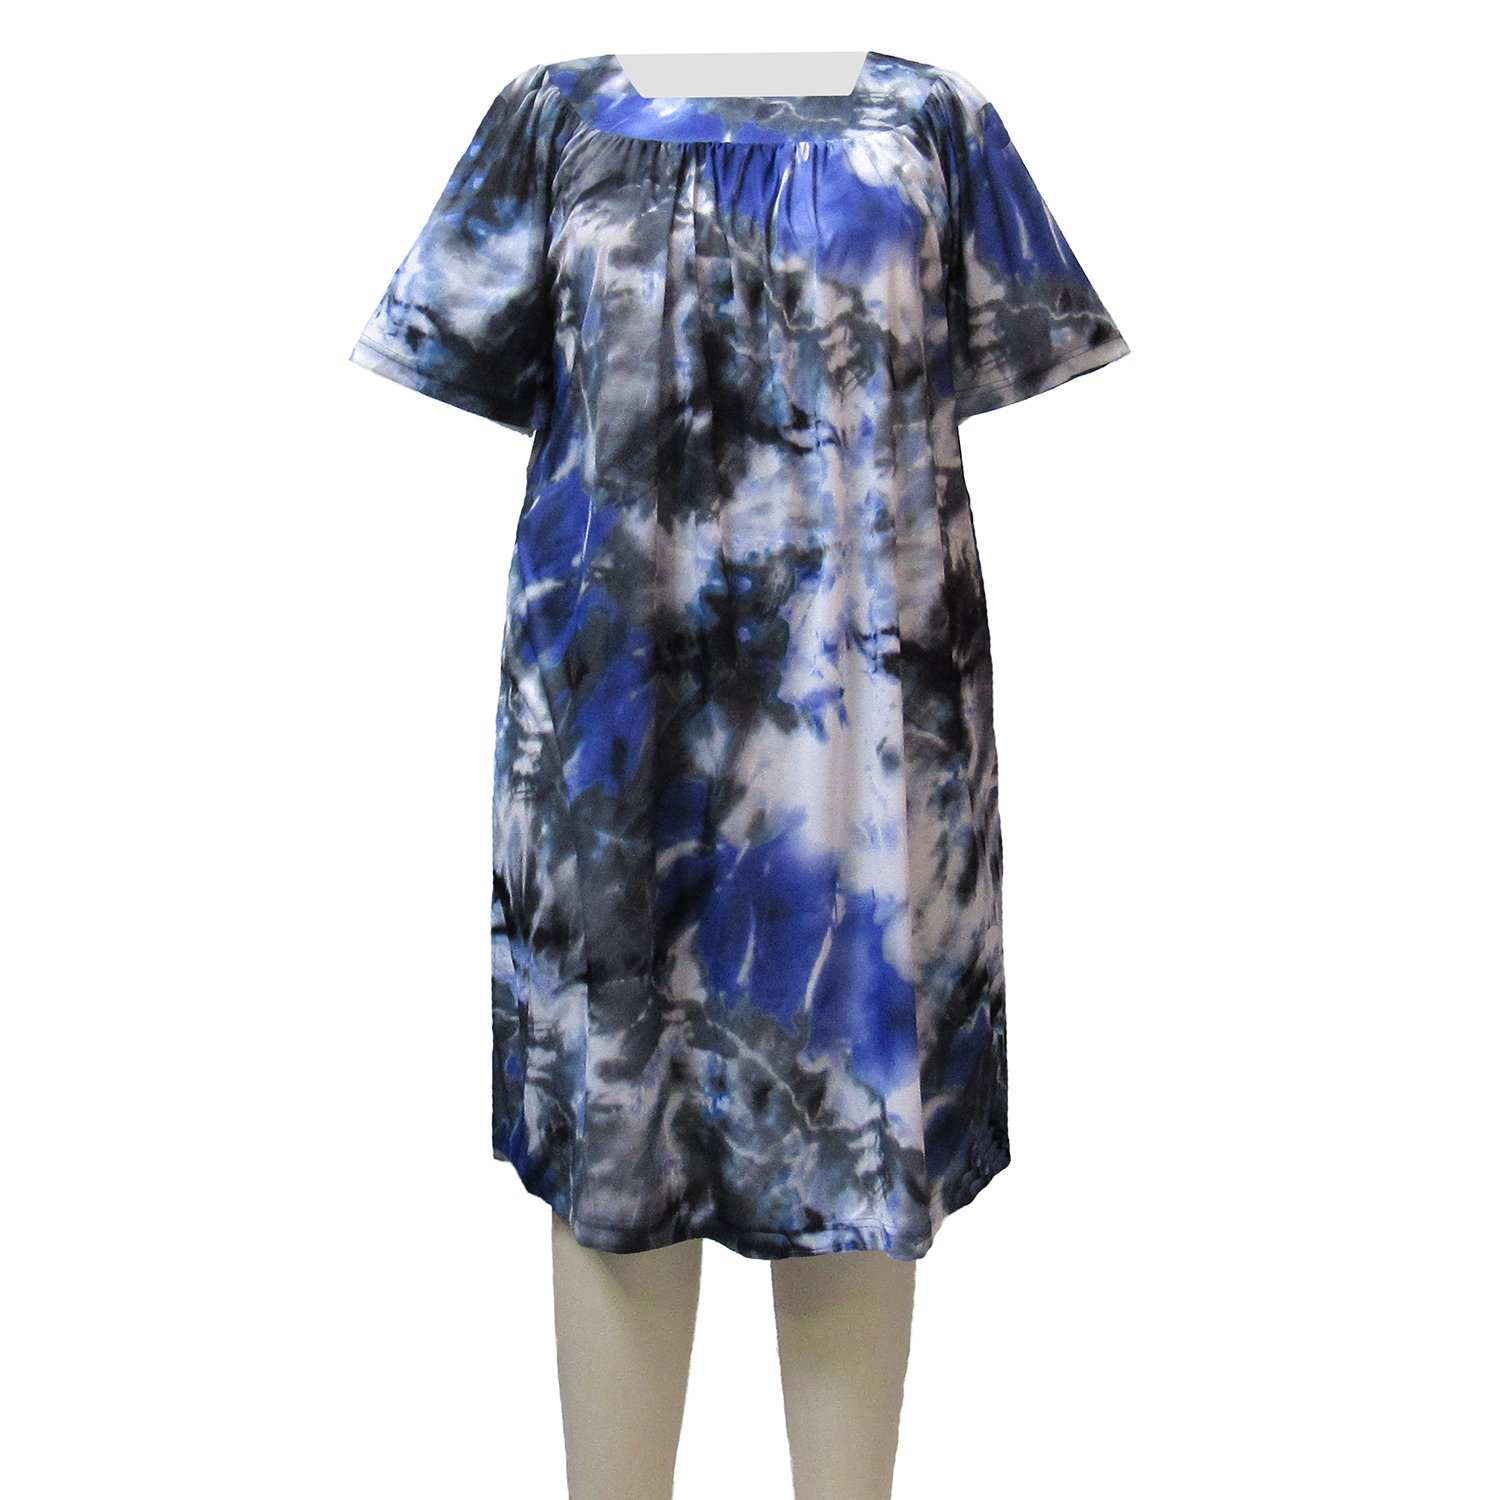 A Personal Touch Eclipse Womens Plus Size Lounging Dress